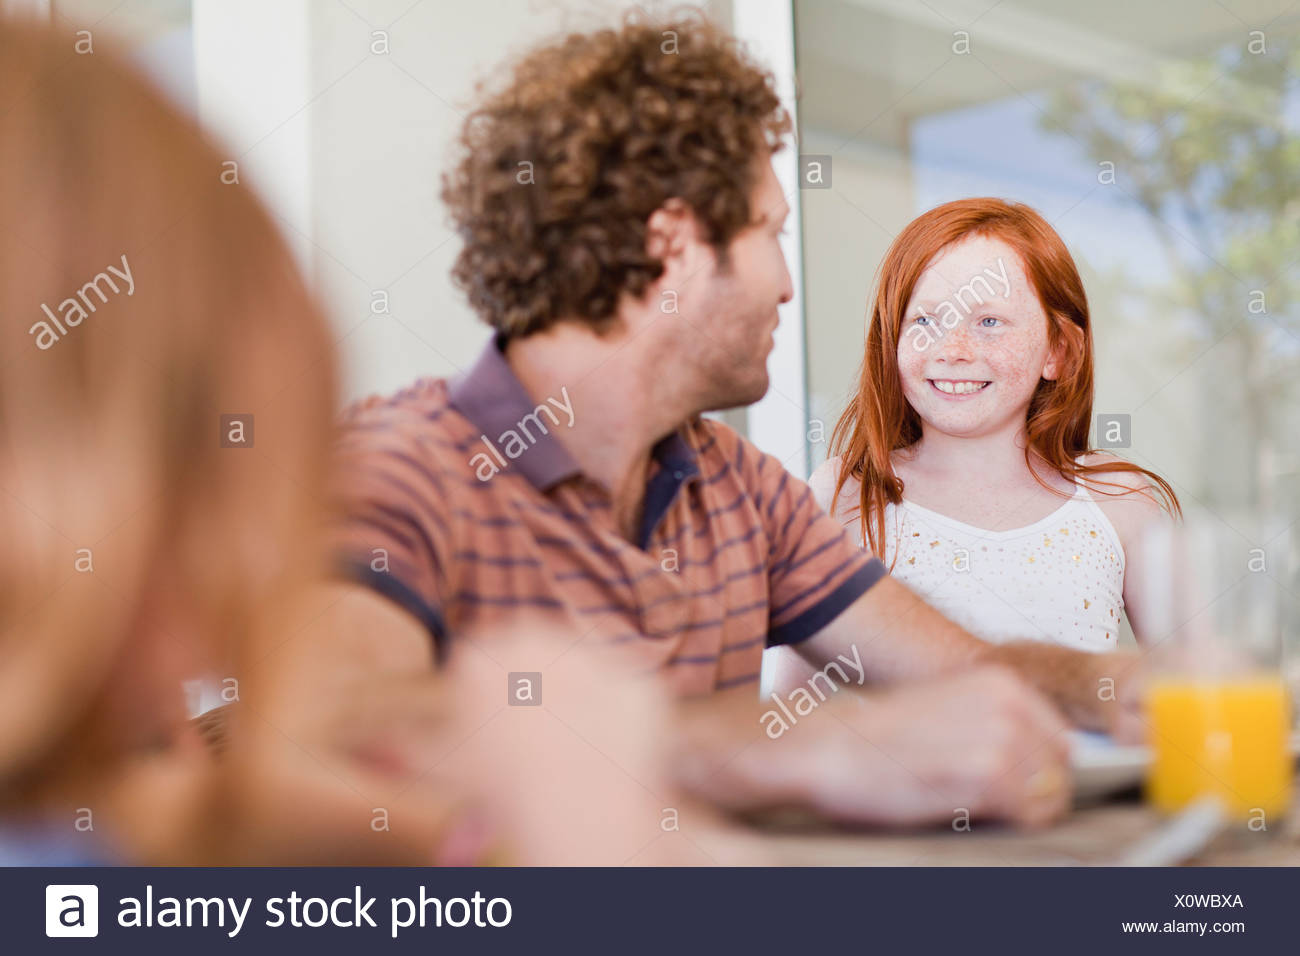 Girl smiling at father at breakfast - Stock Image